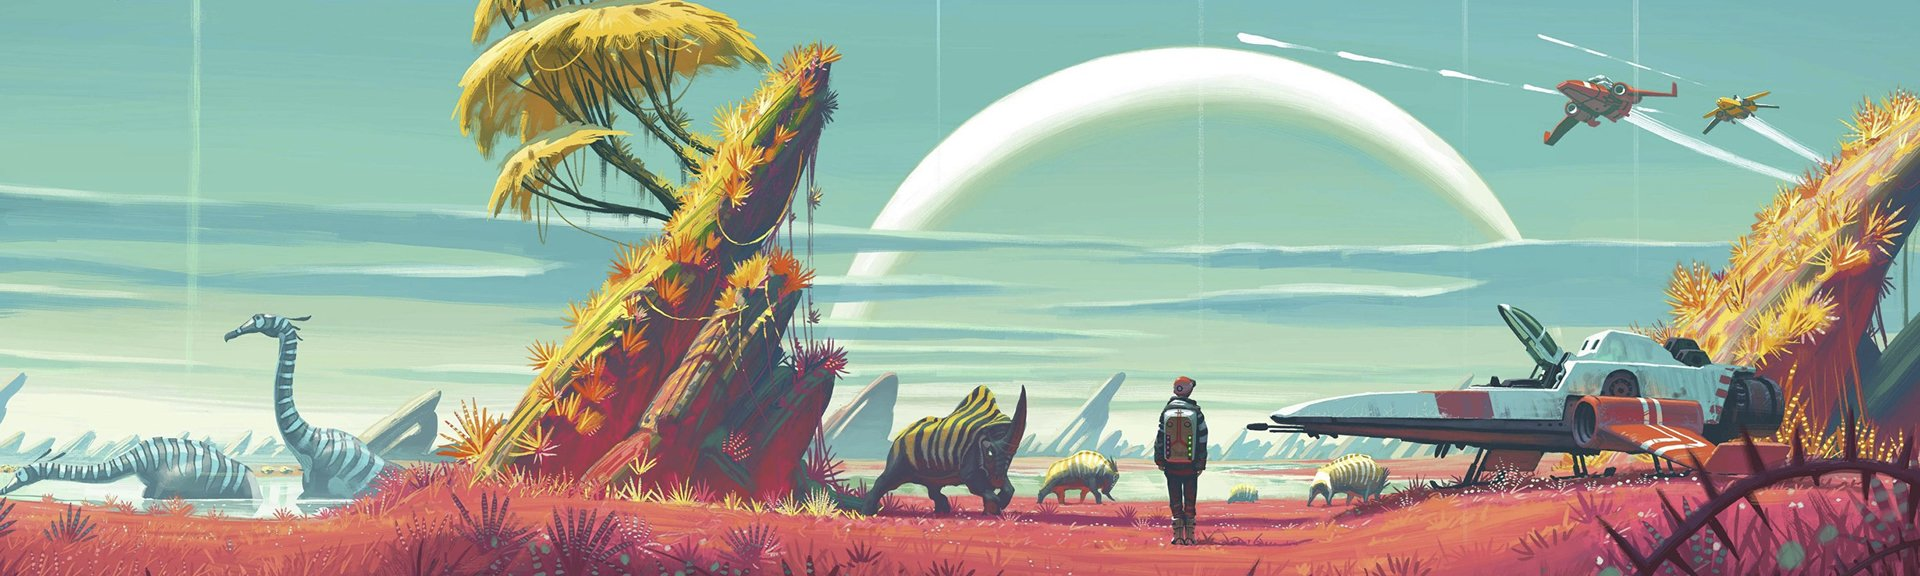 No Man's Sky Beyond Next walkthrough faq guides beginner tips hints